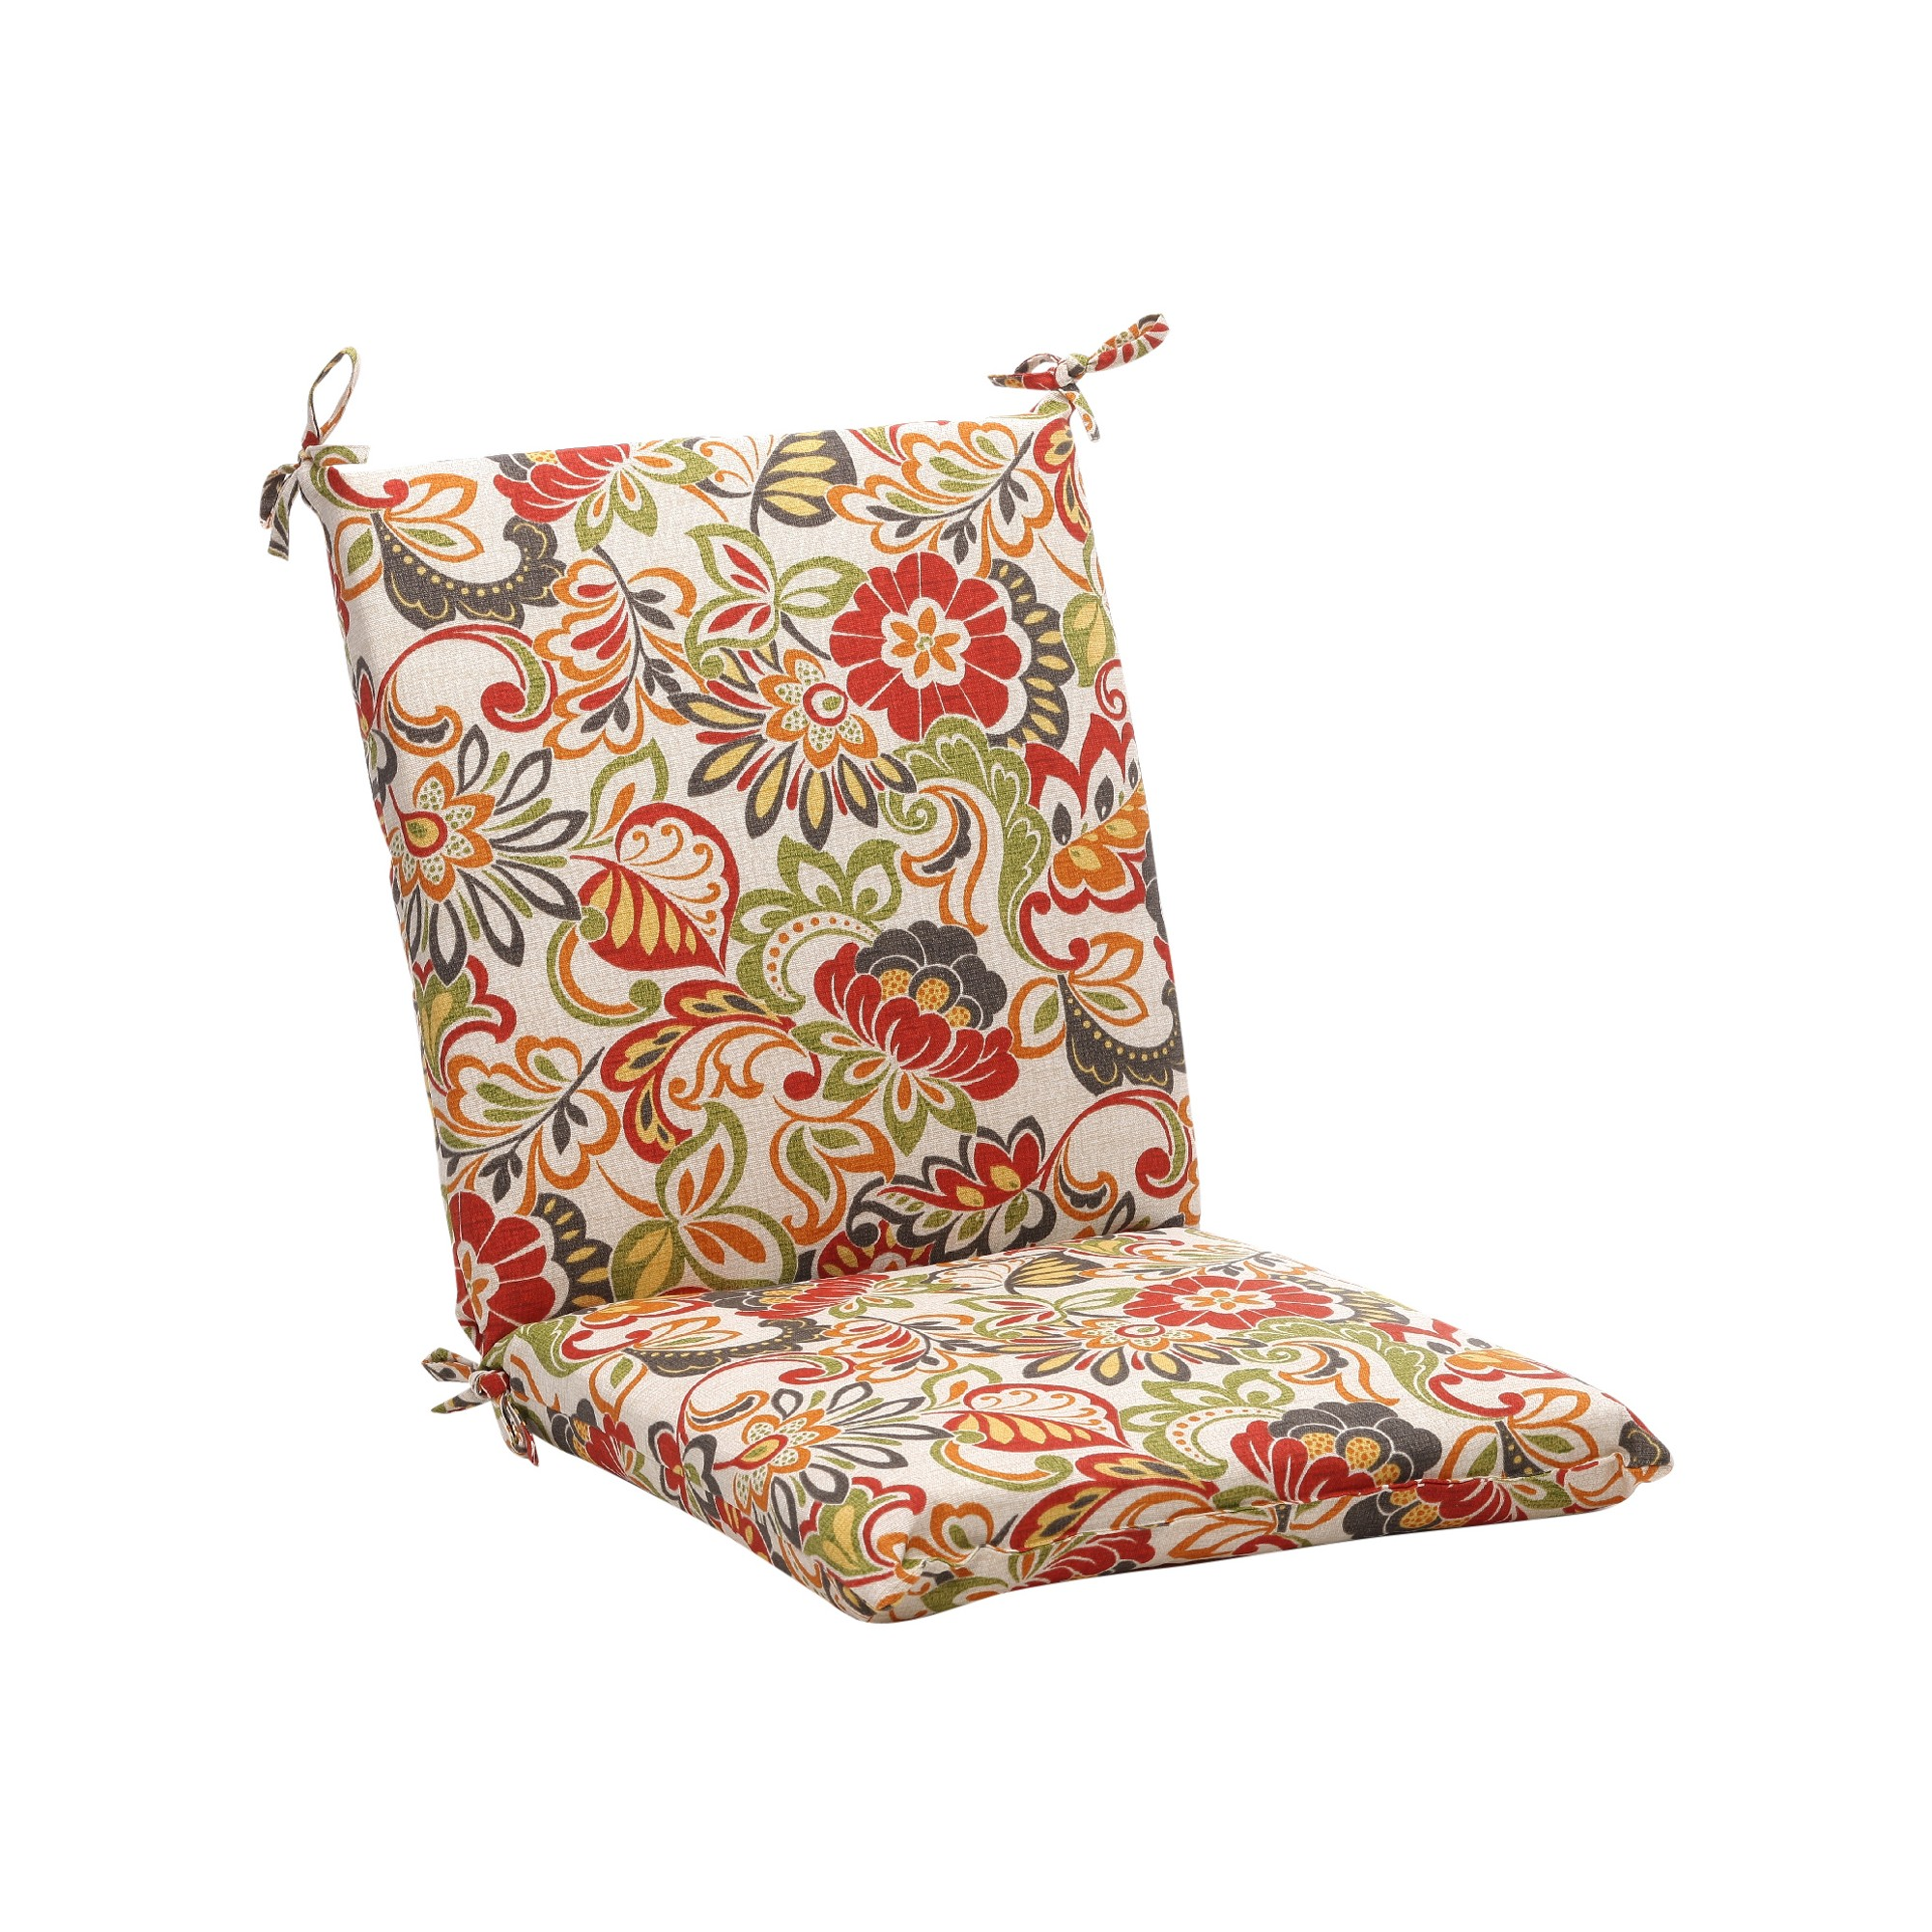 Outdoor Chair Cushion Green Off White Red Floral Outdoor Chair Cushions Floral Chair Outdoor Chairs